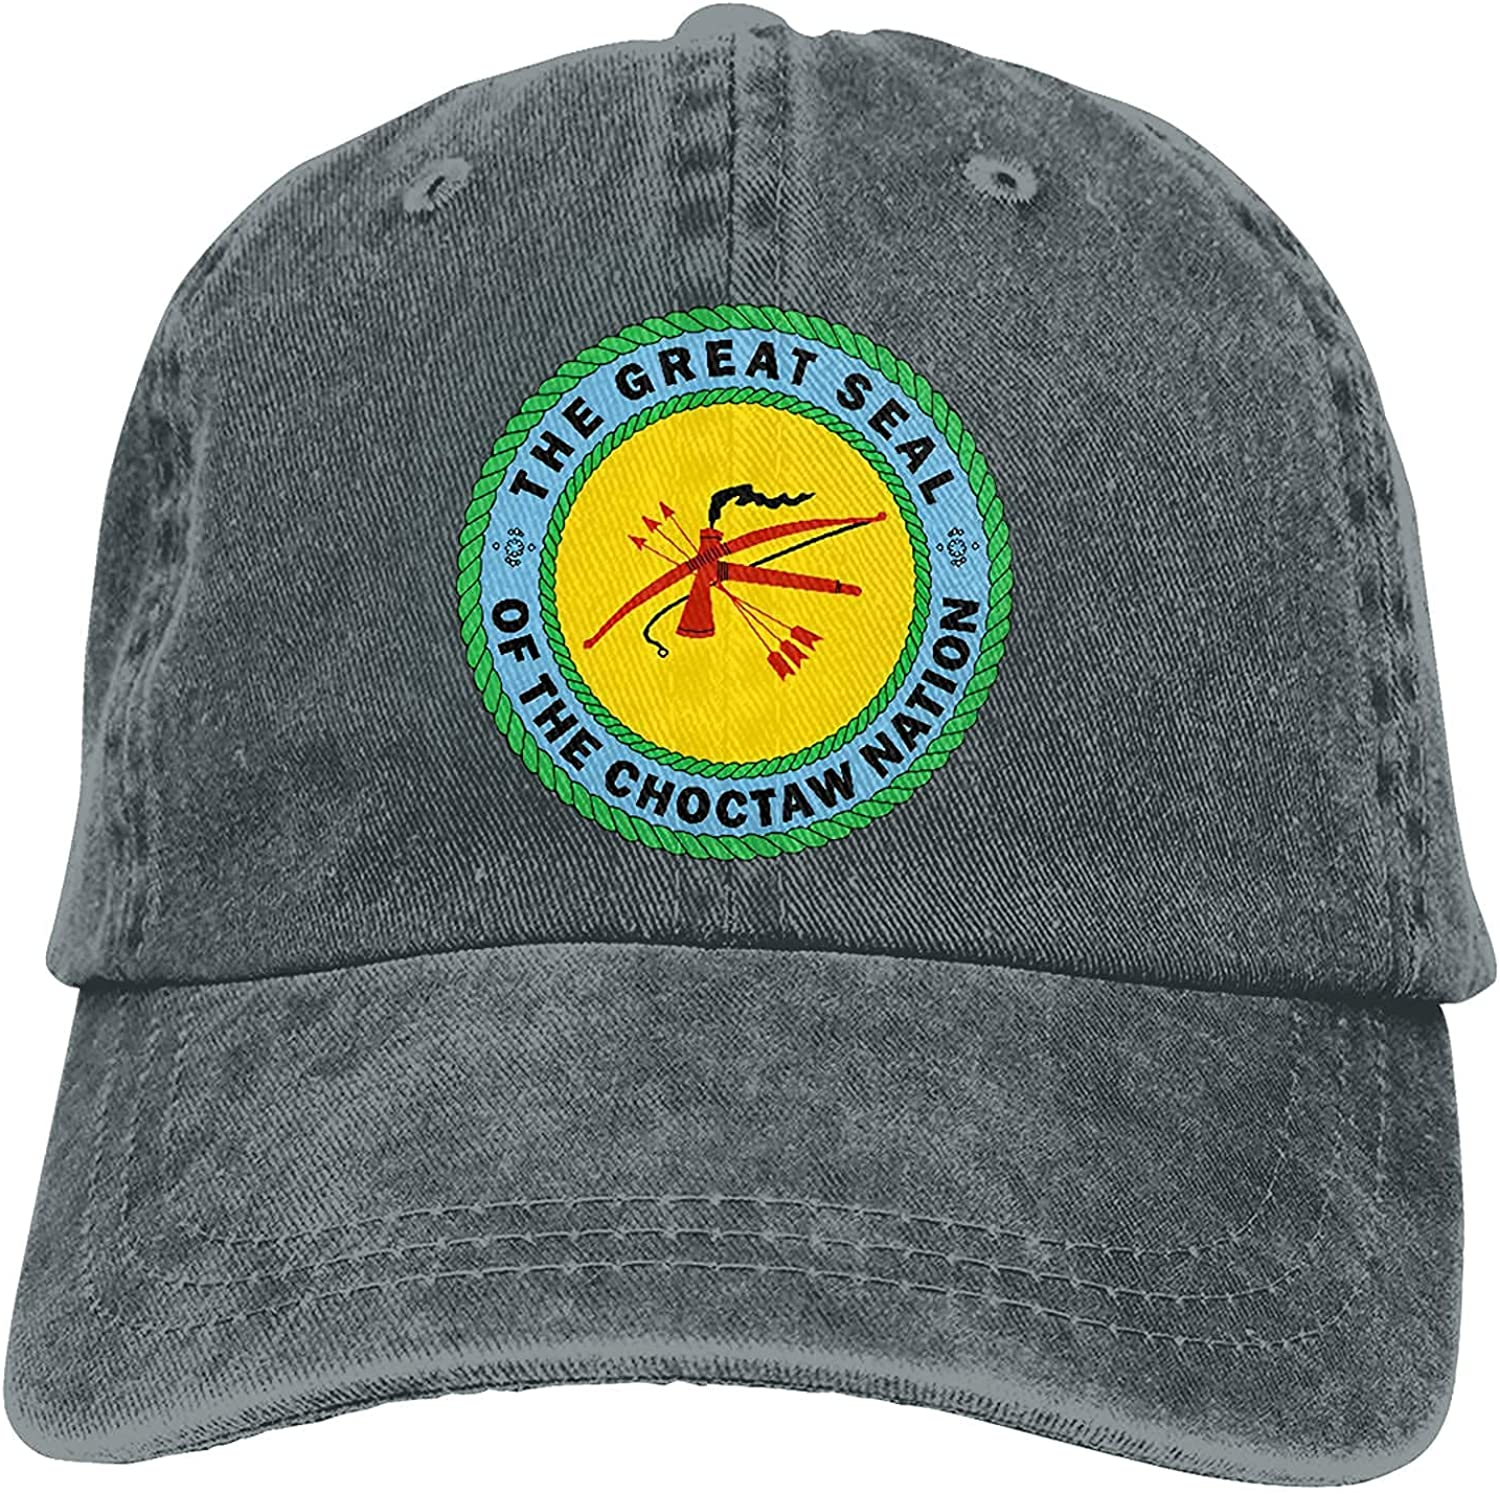 BGWORZD Choctaw Nation Outdoor Men's Baseball Cap Sports and Leisure Adjustable Cowboy Hat Performance Cap Navy